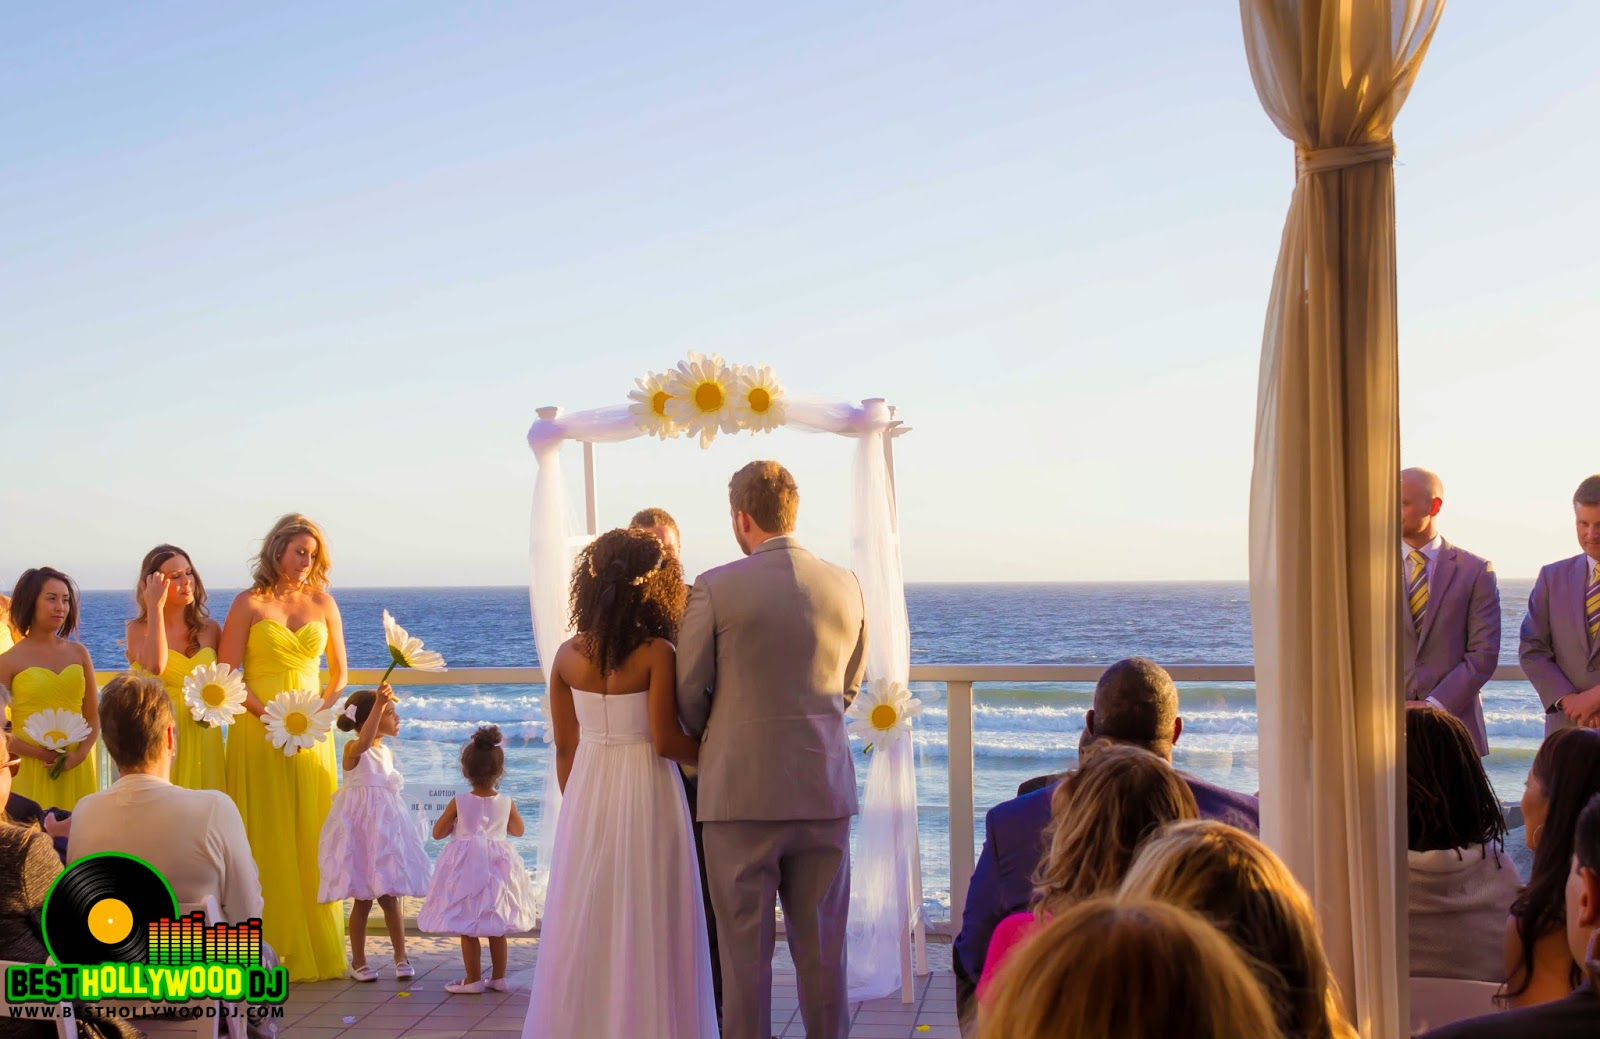 malibu west beach club, best hollywood dj, malibu weddings